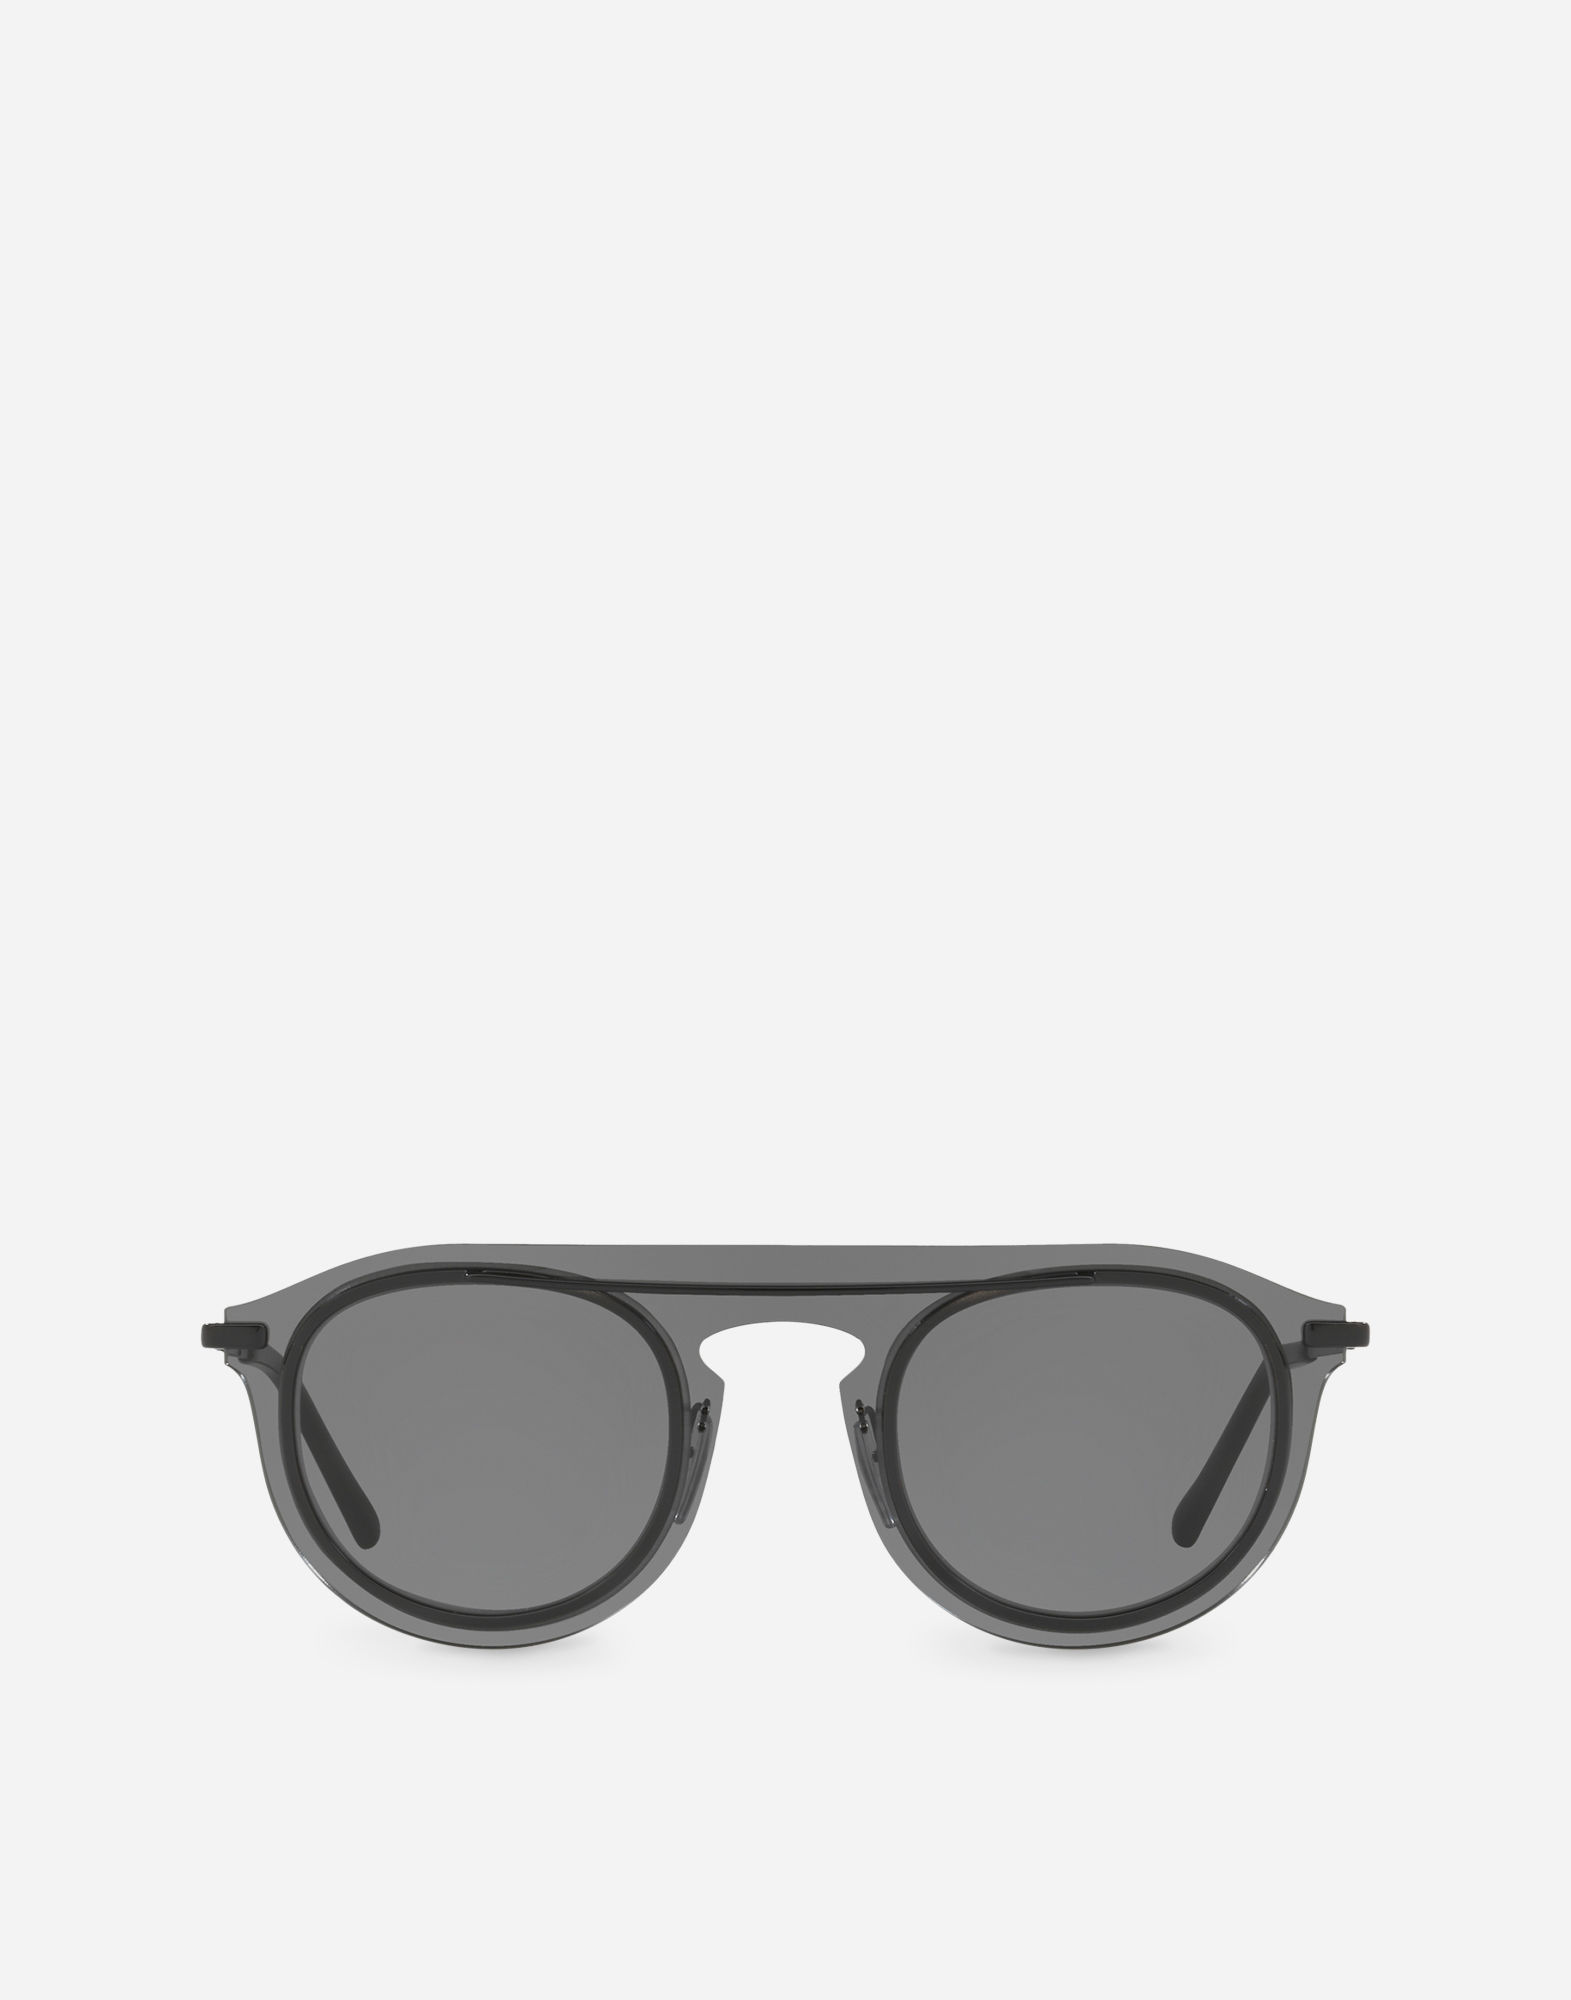 29867586a6f1 Dolce   Gabbana Panthos Sunglasses In Metal And Acetate In Smoke ...